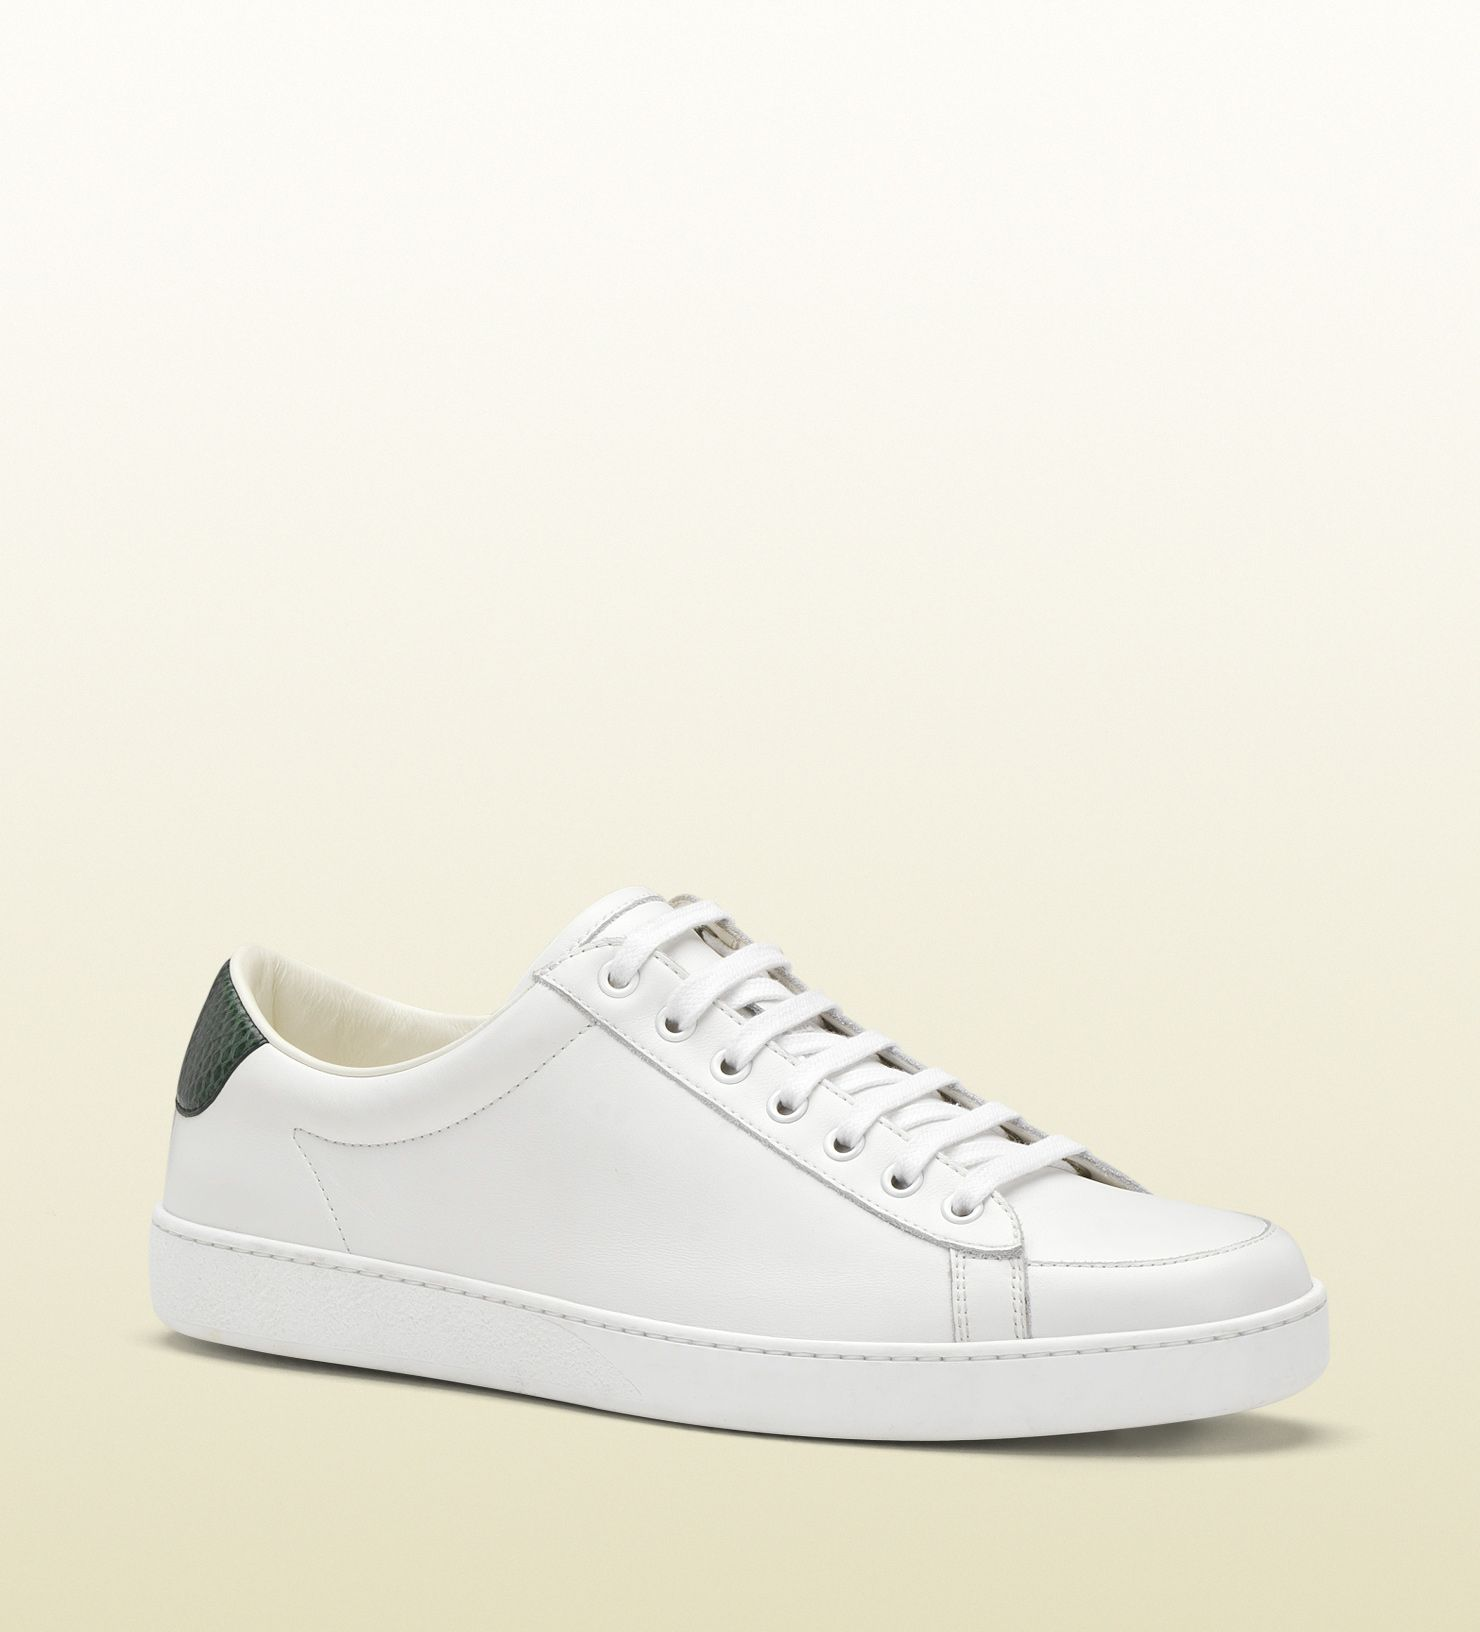 087fc8c7e32fd3 white leather lace-up sneaker